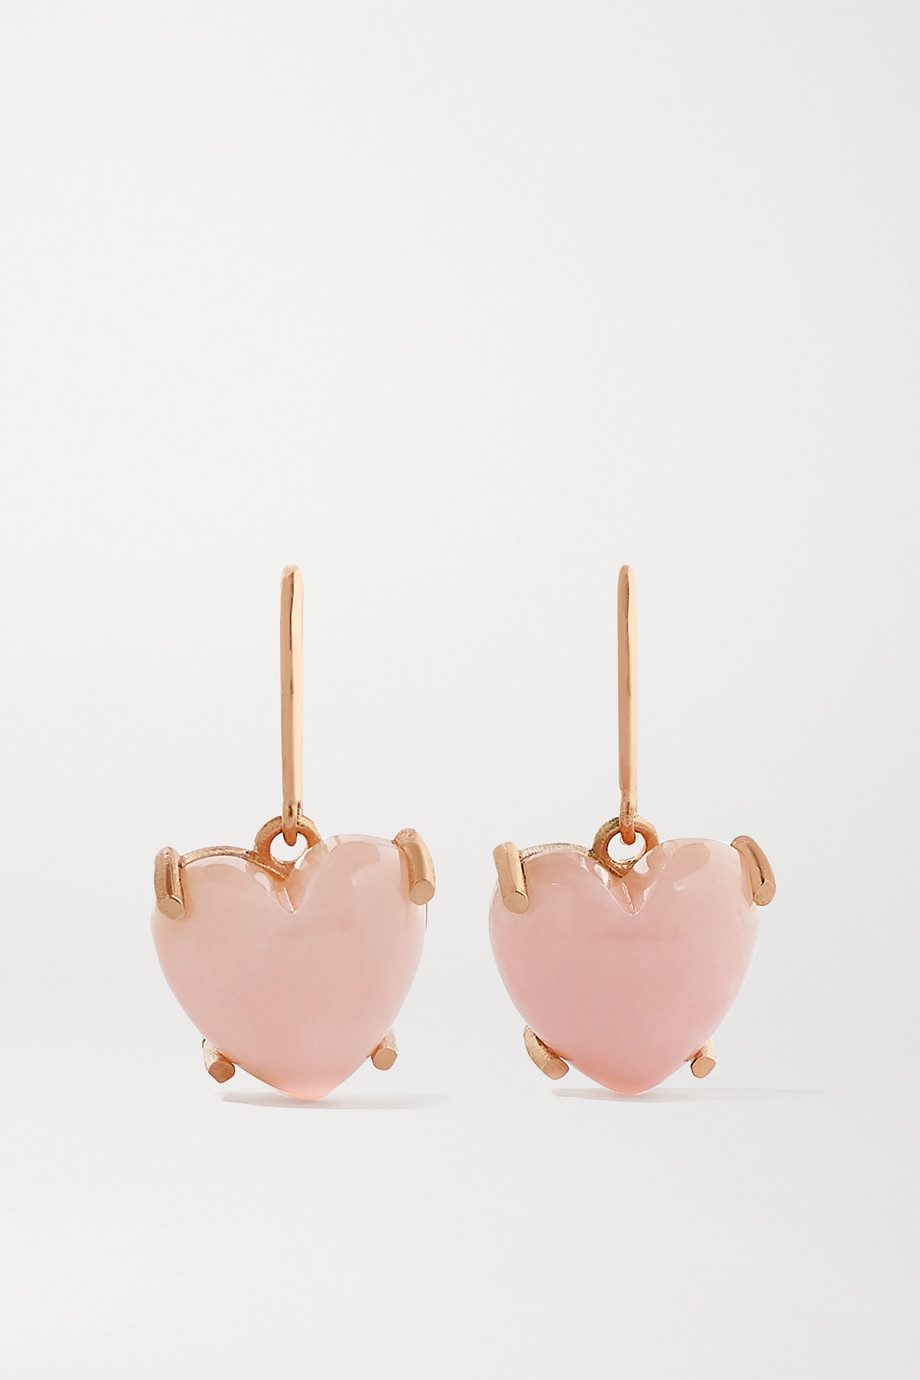 Irene Neuwirth Love 18-karat rose gold opal earrings